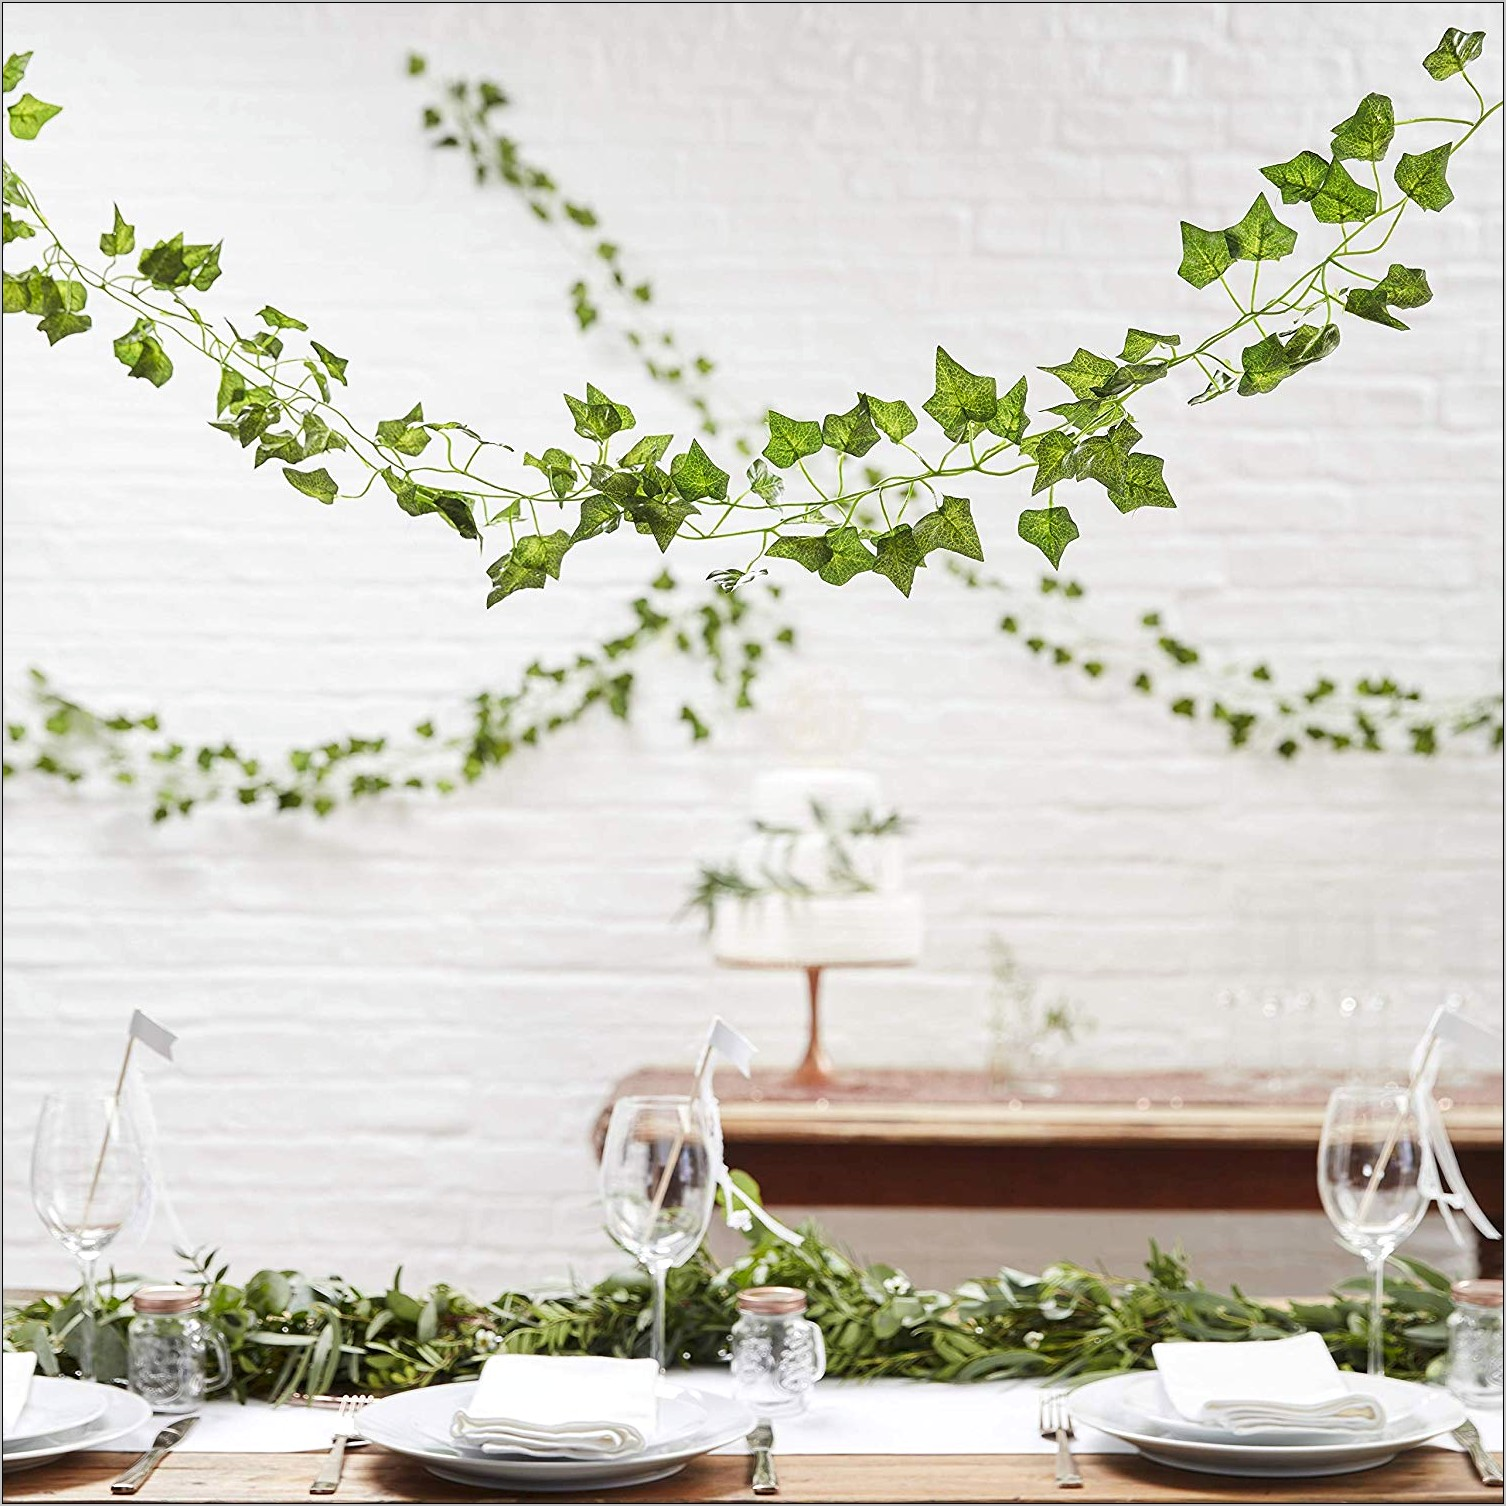 Decorative Vines For Above Kitchen Window